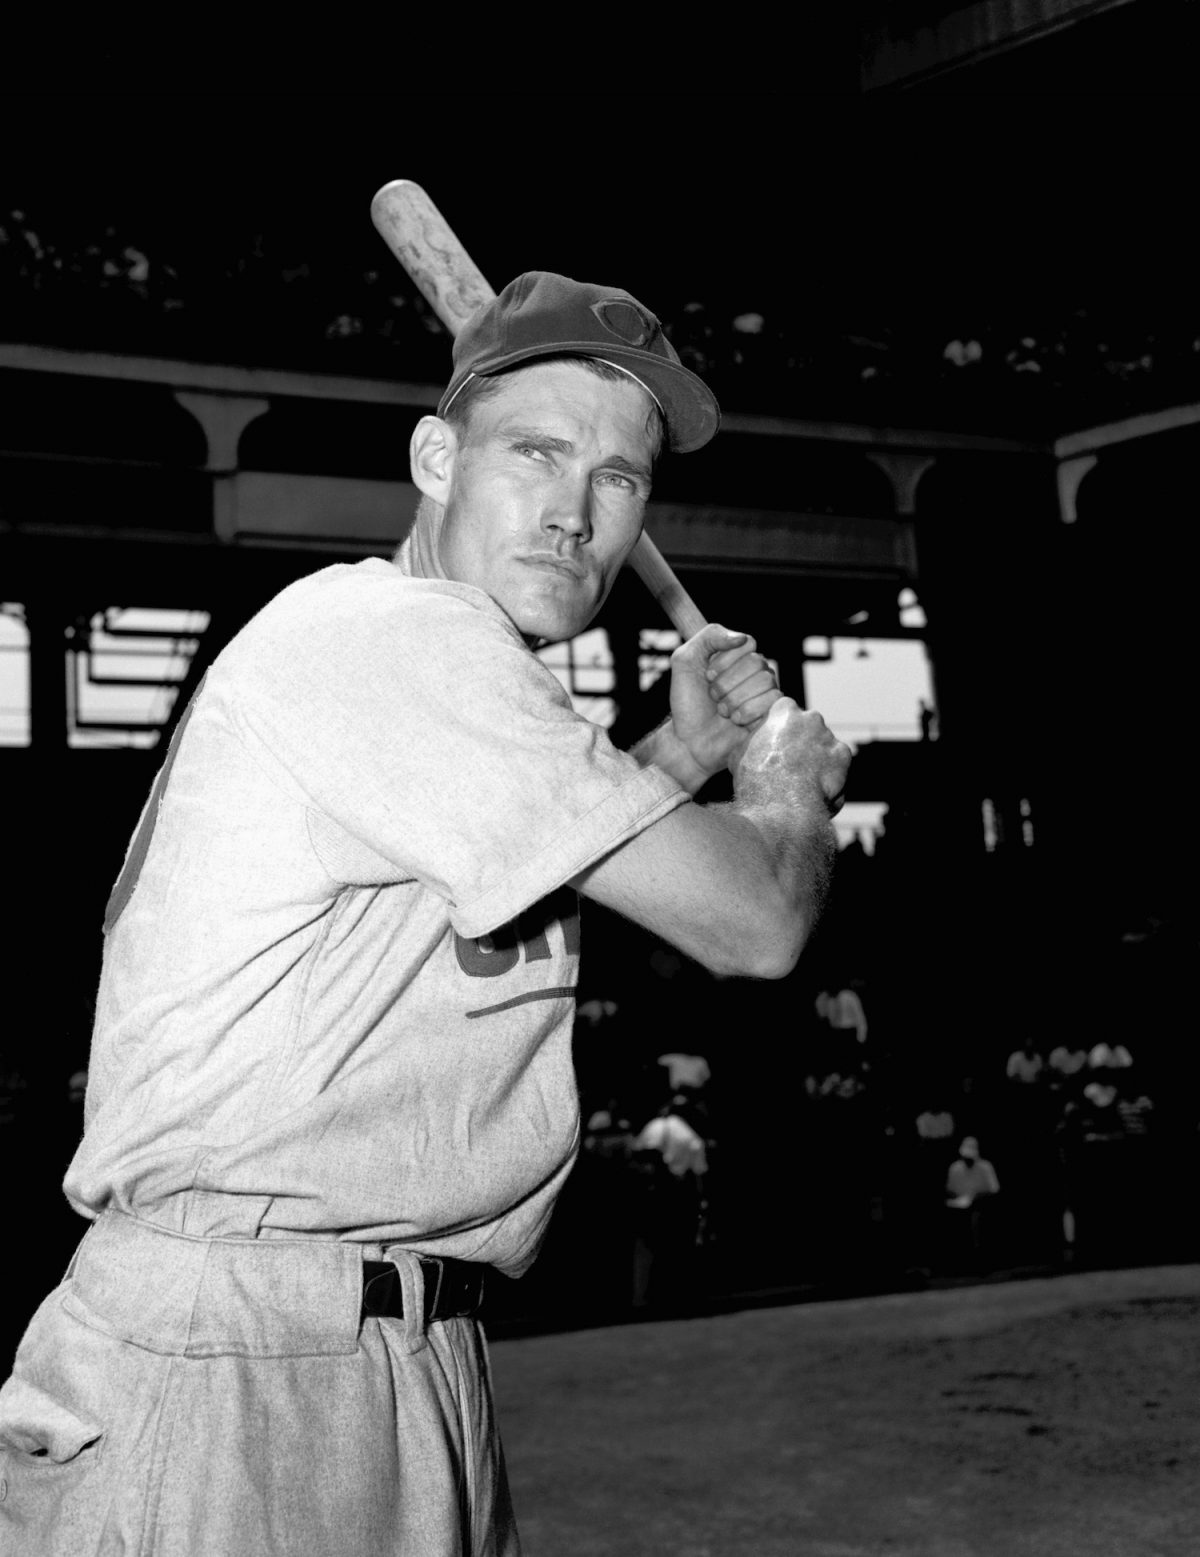 Chuck Connors, baseball